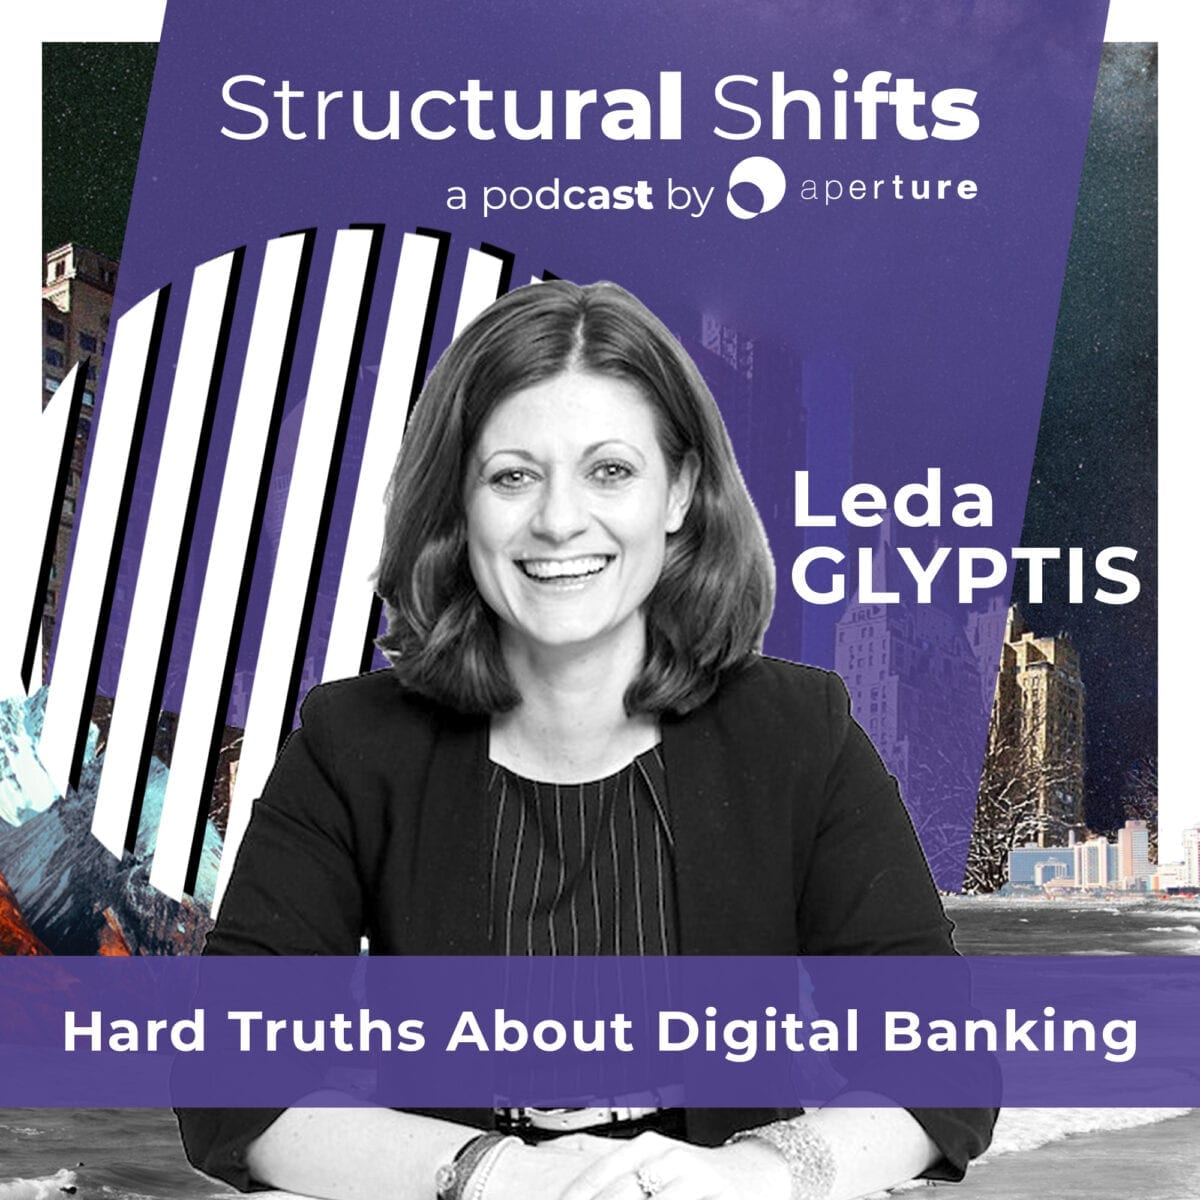 Hard Truths about Digital Banking (#32)